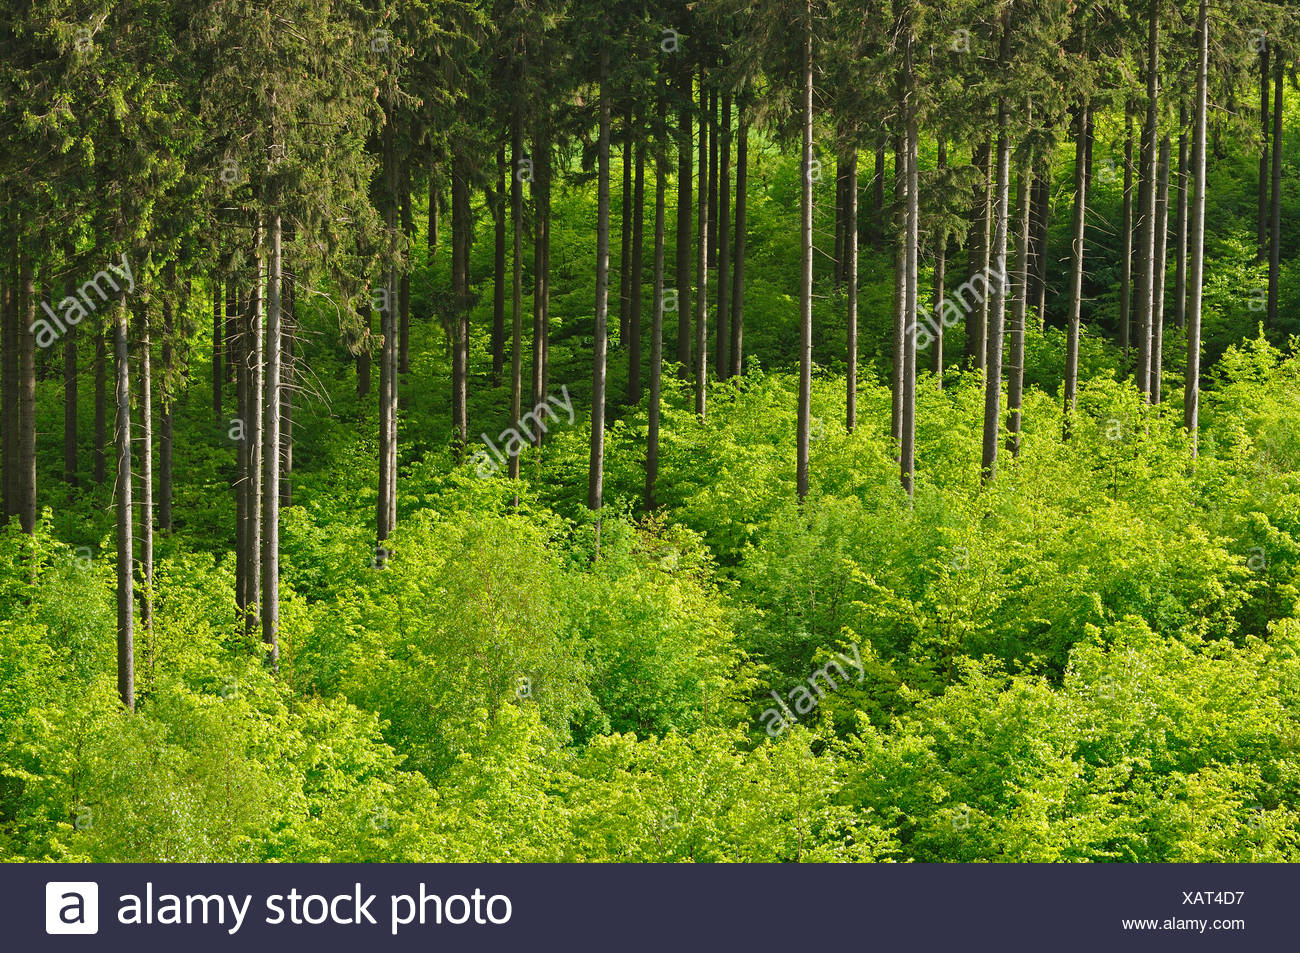 Norway spruce (Picea abies), conifer forest with young decidous trees, Germany - Stock Image